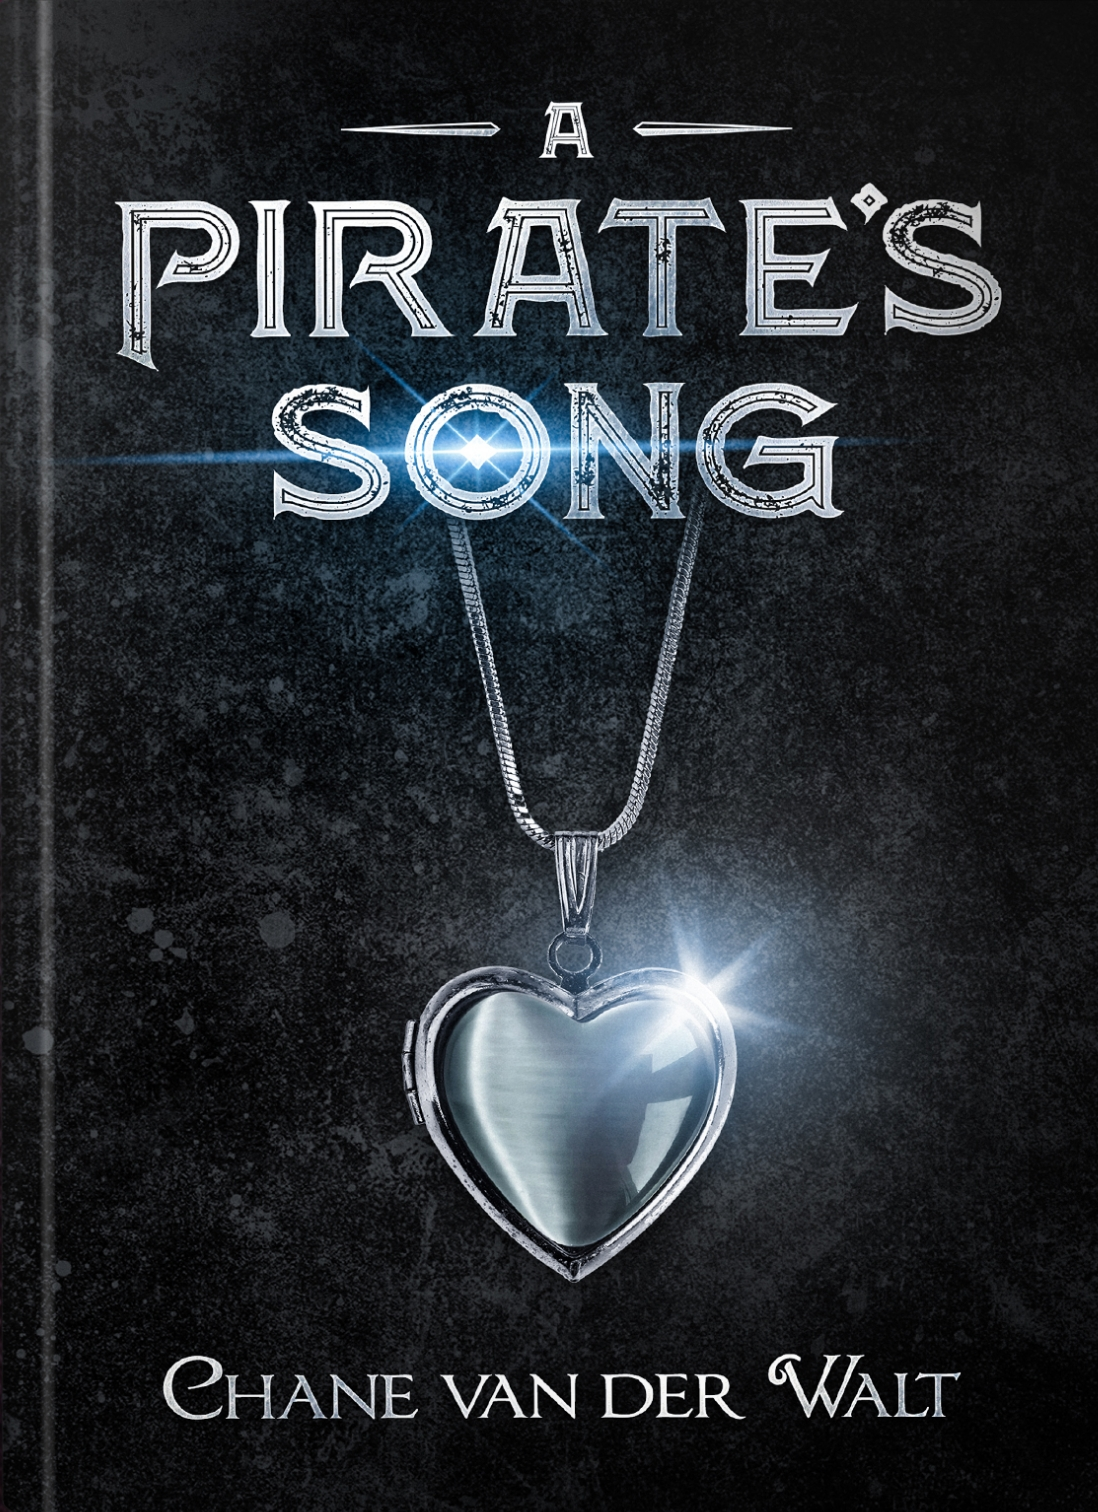 A Pirate's Song.